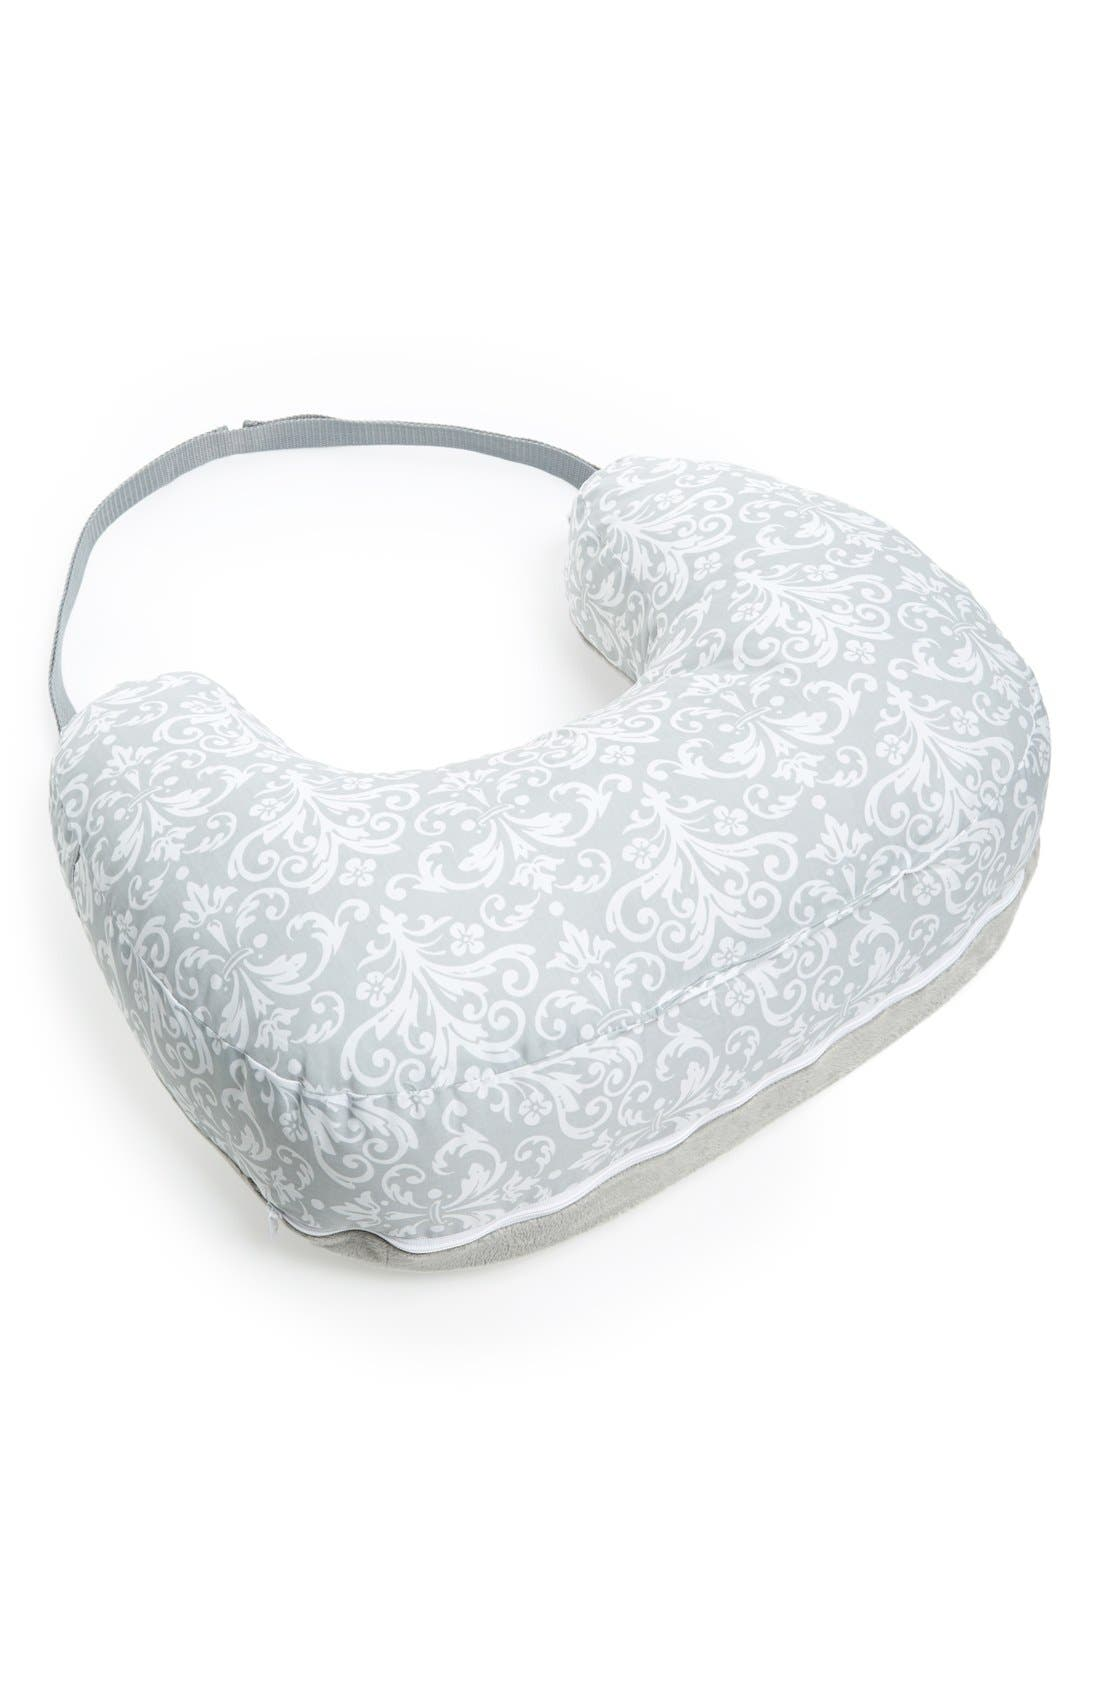 Two Sided Breastfeeding Pillow & Slipcover,                             Main thumbnail 1, color,                             KENSINGTON GREY